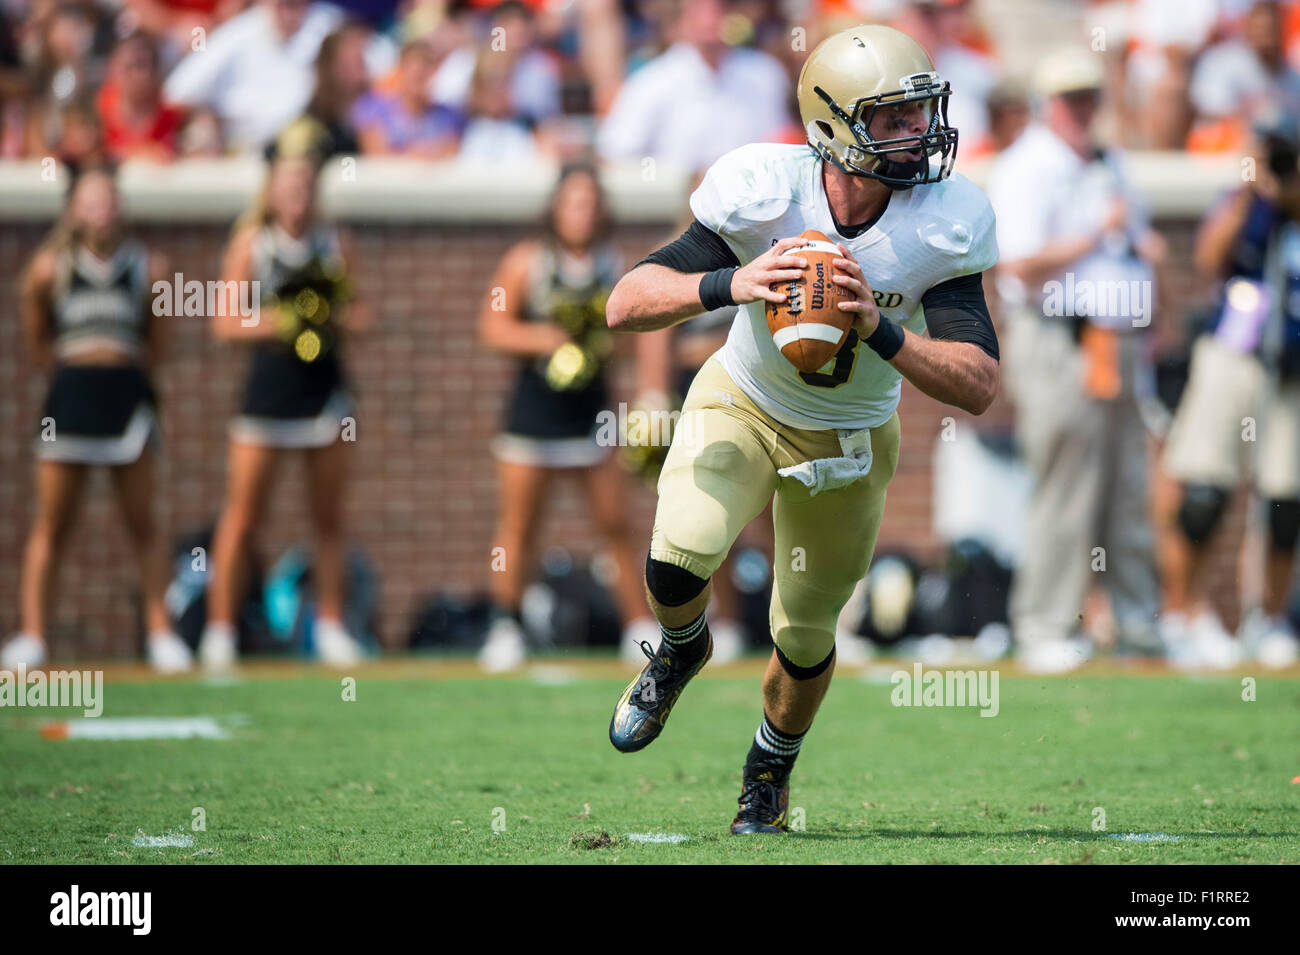 Wofford Quarterback Evan Jacks 3 During The Ncaa College